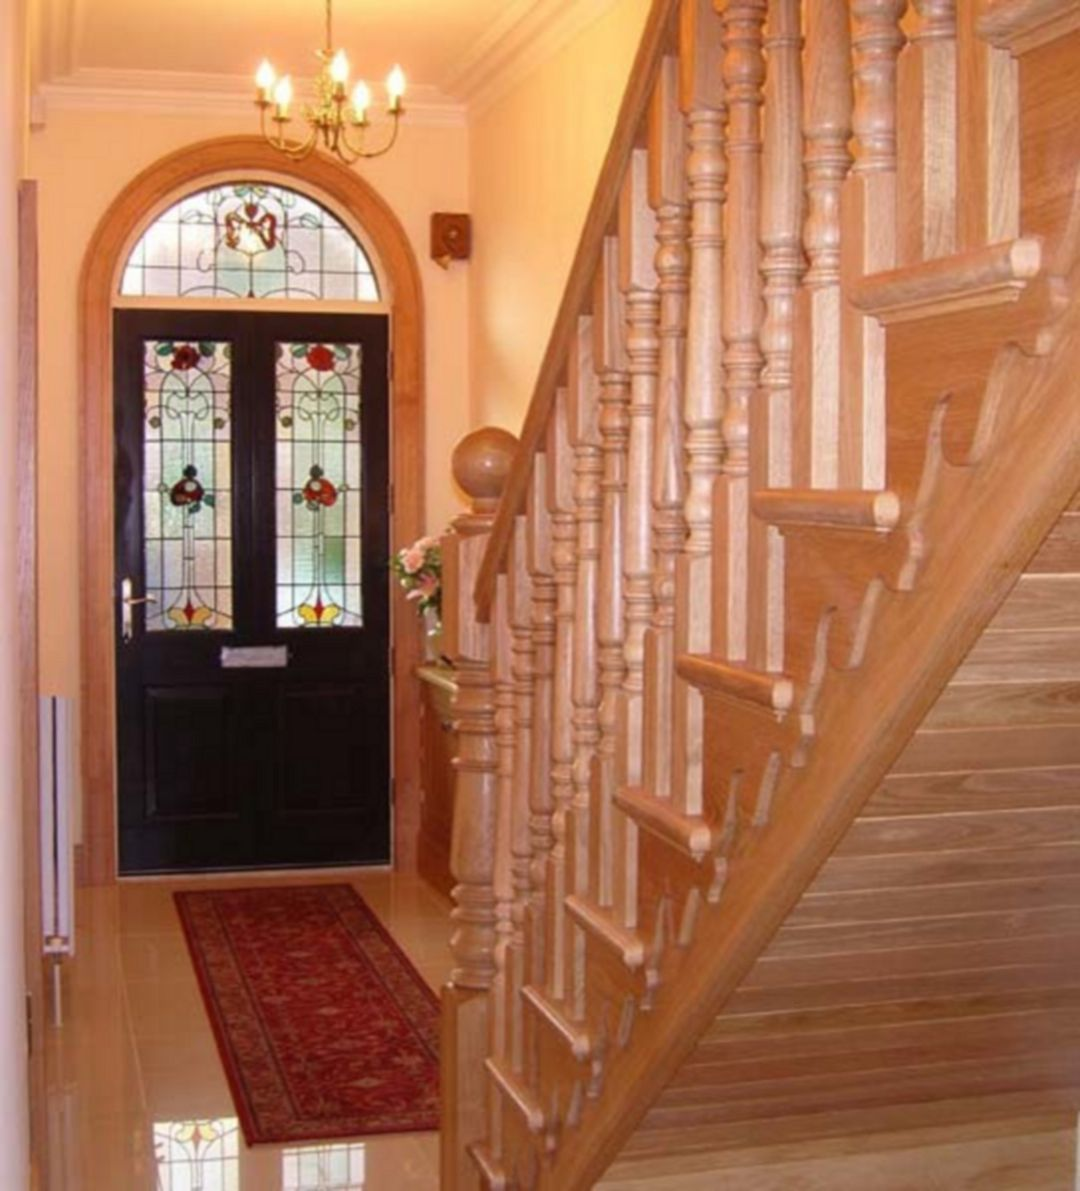 20 Excellent Traditional Staircases Design Ideas: 20+ Amazing Victorian Staircases Design Ideas For Beauty